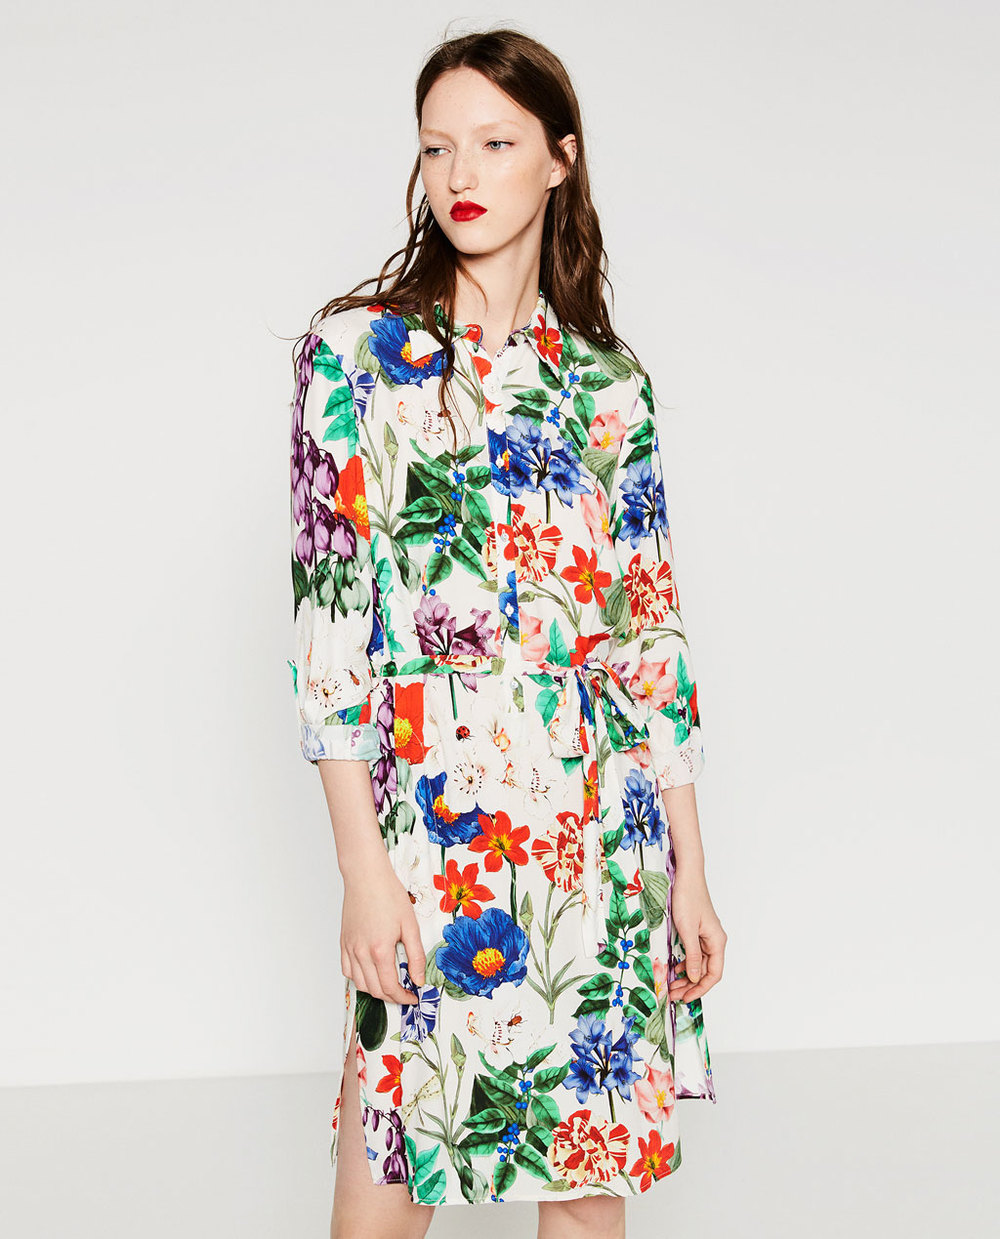 Zara Printed Tunic, $70 at    Zara.com .